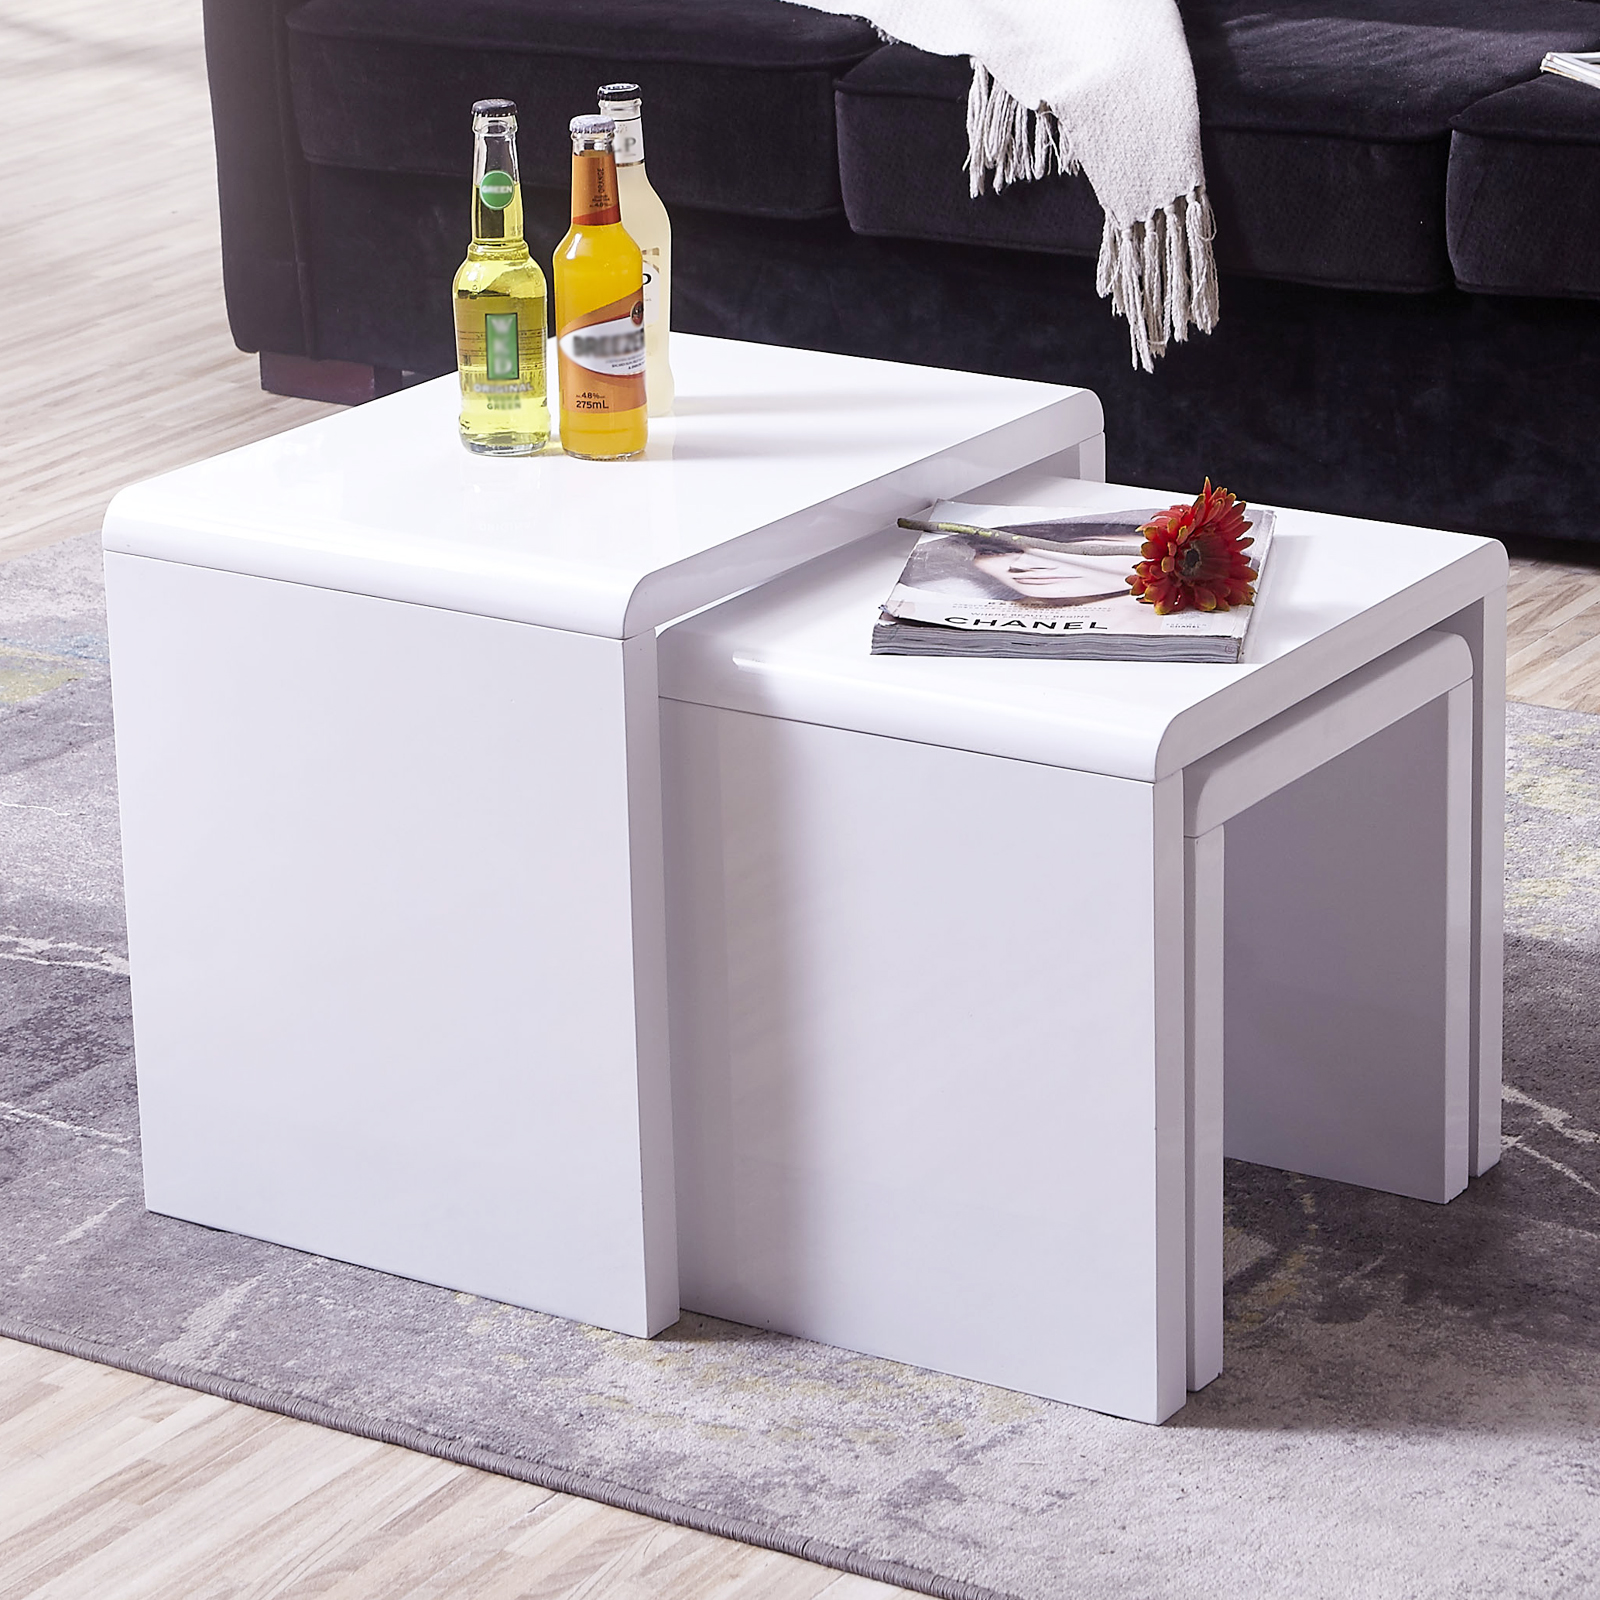 High Gloss 3 Side Nested Of Tables White Set Coffee Table: High Gloss White Solid Nest Of 3 Coffee Tables MDF